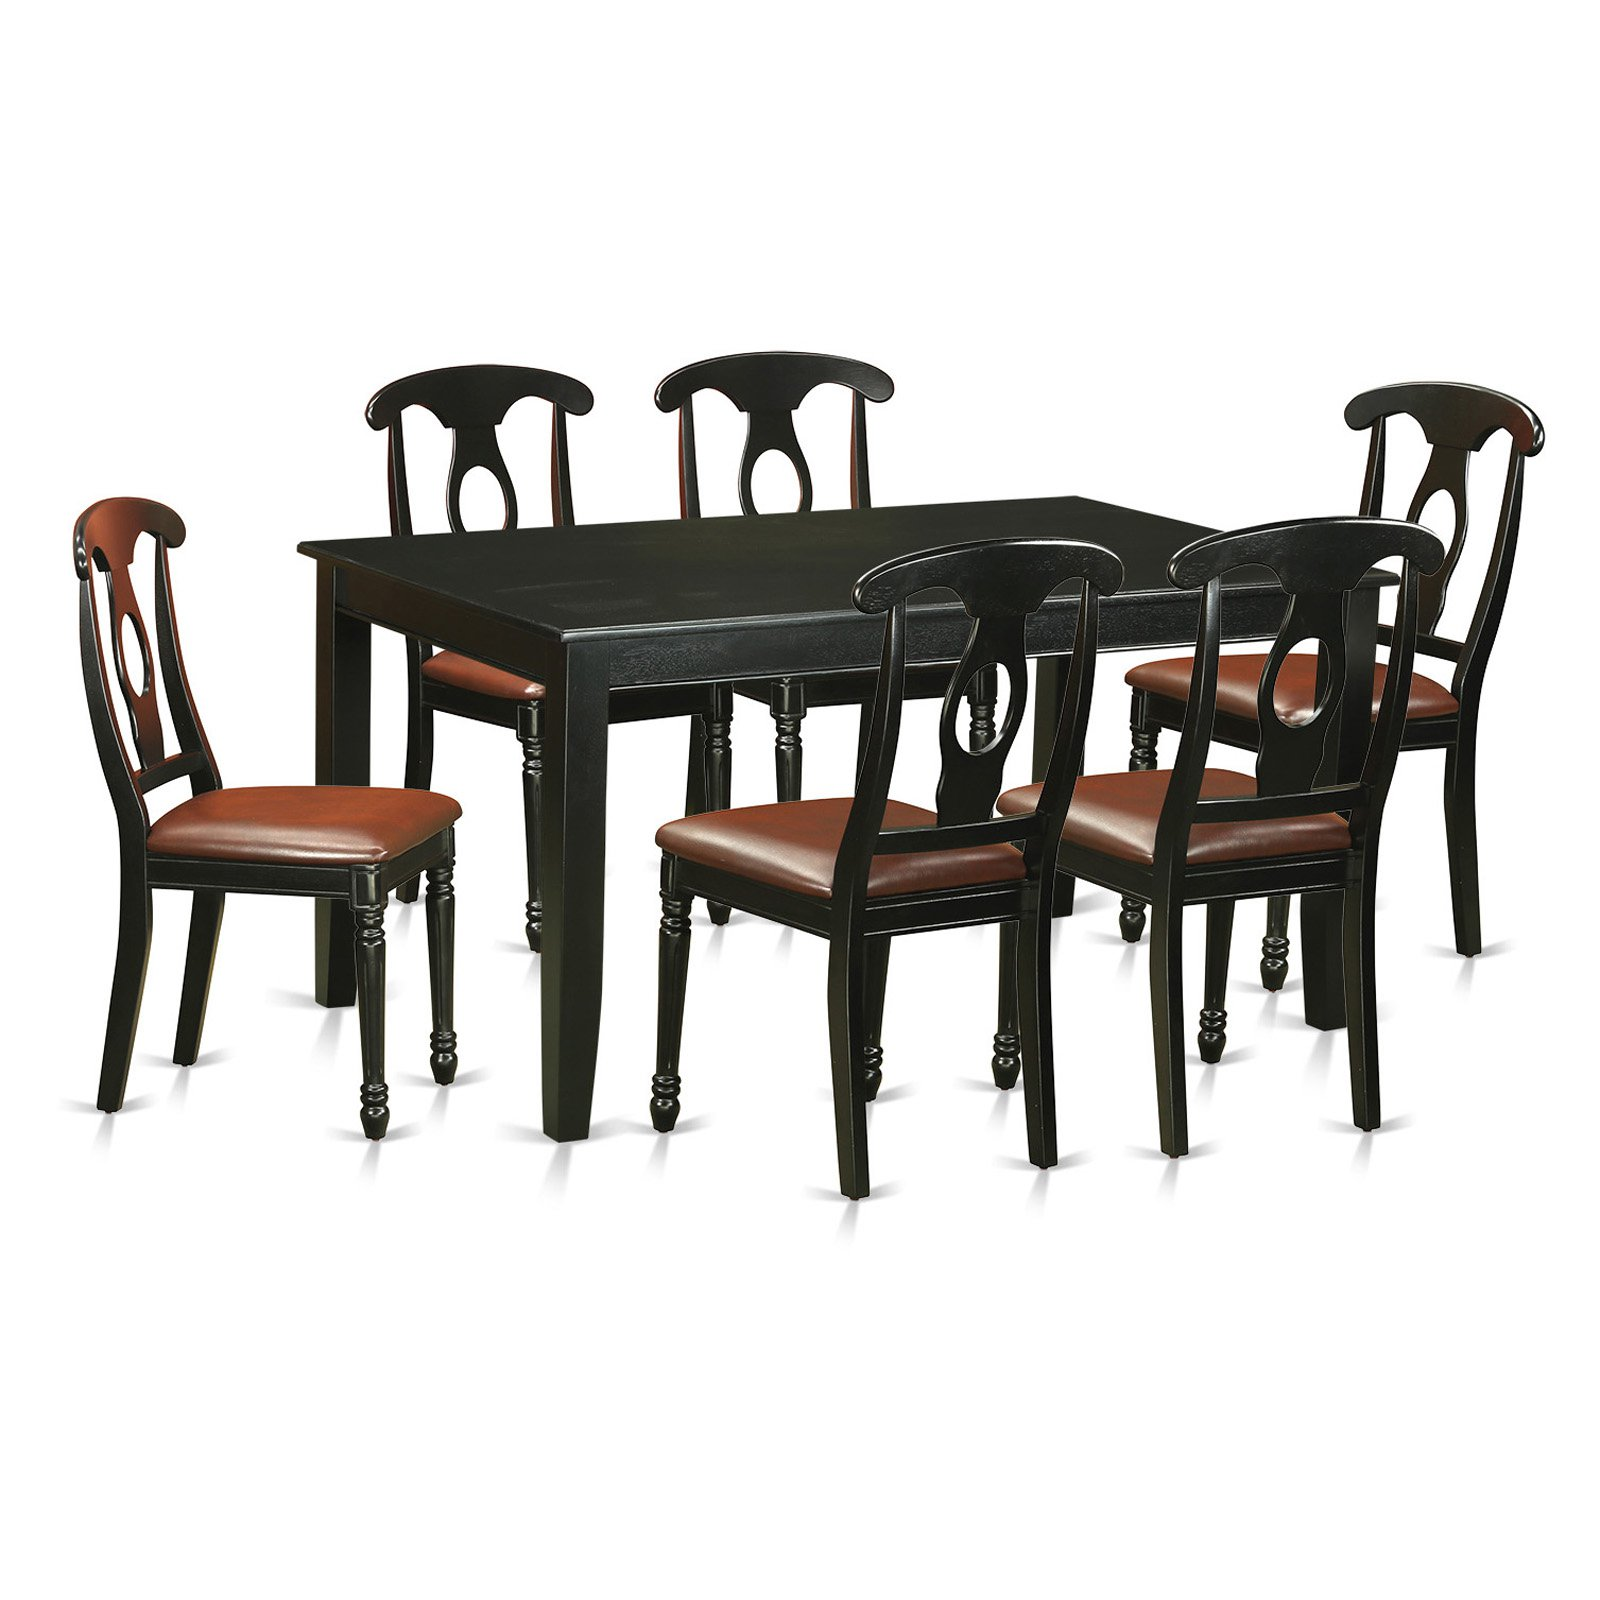 East West Furniture Dudley 7 Piece Rectangular Dining Table Set with Kenley Faux Leather Chairs